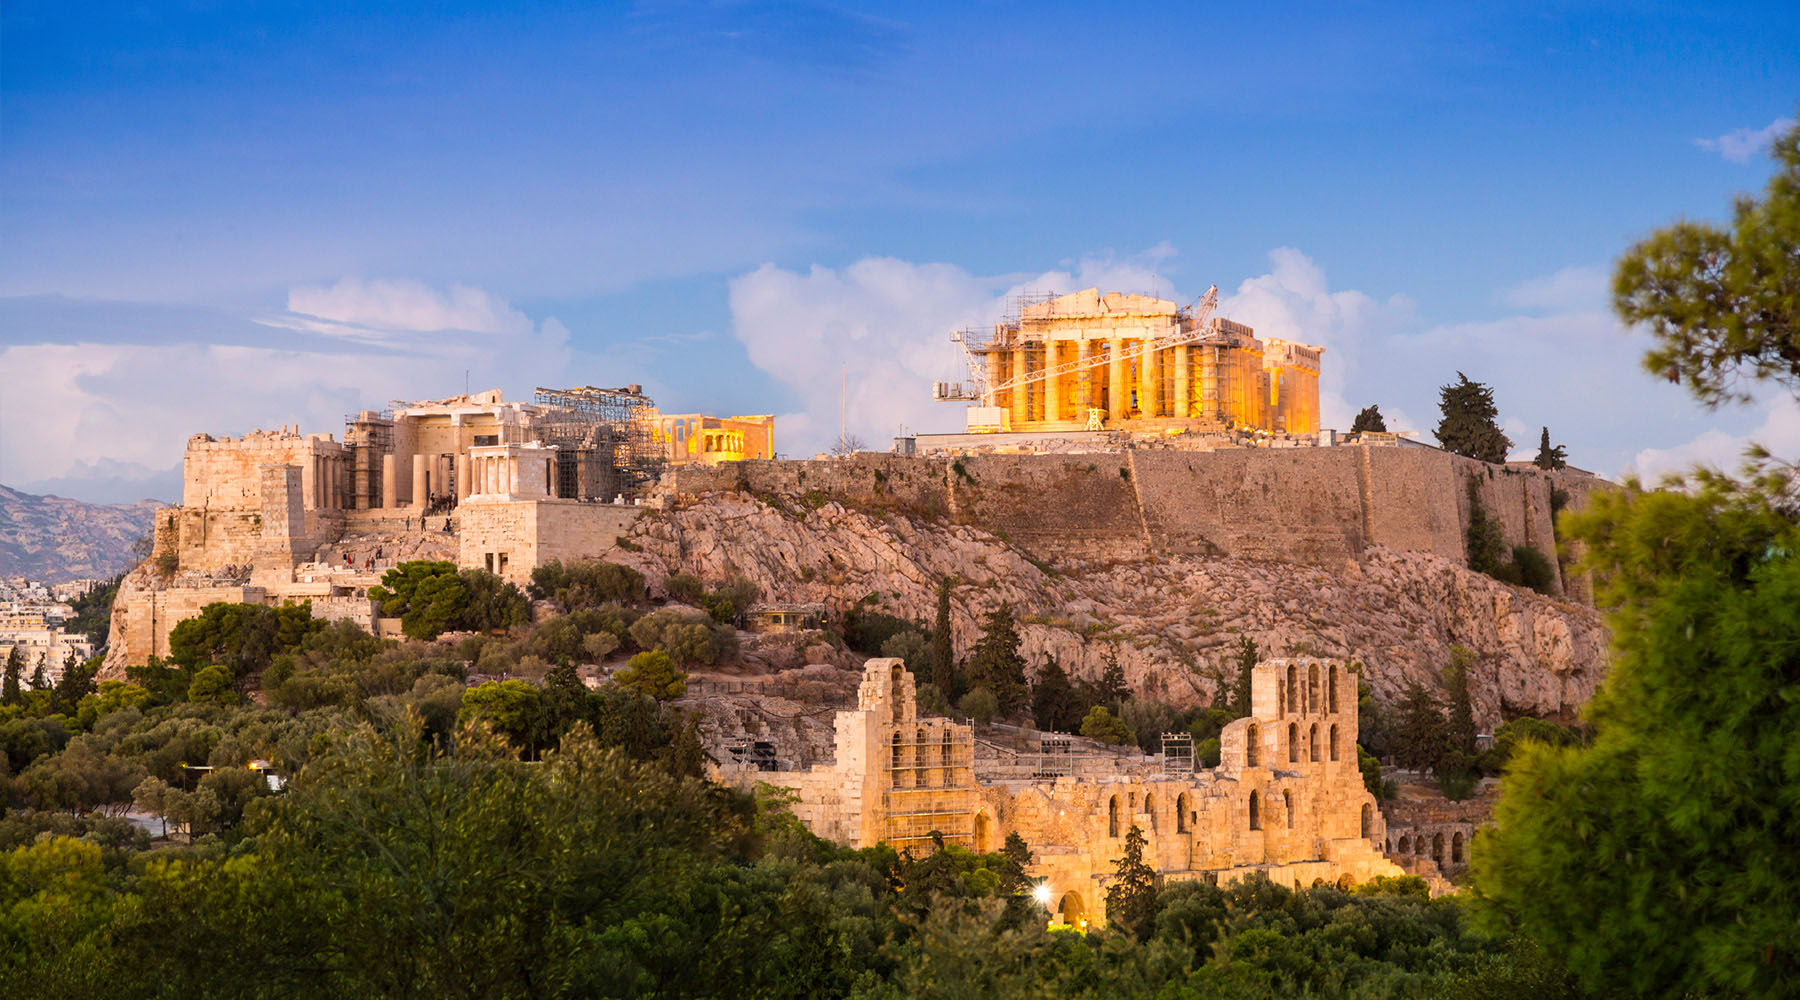 Post-Cruise Explorations in Athens